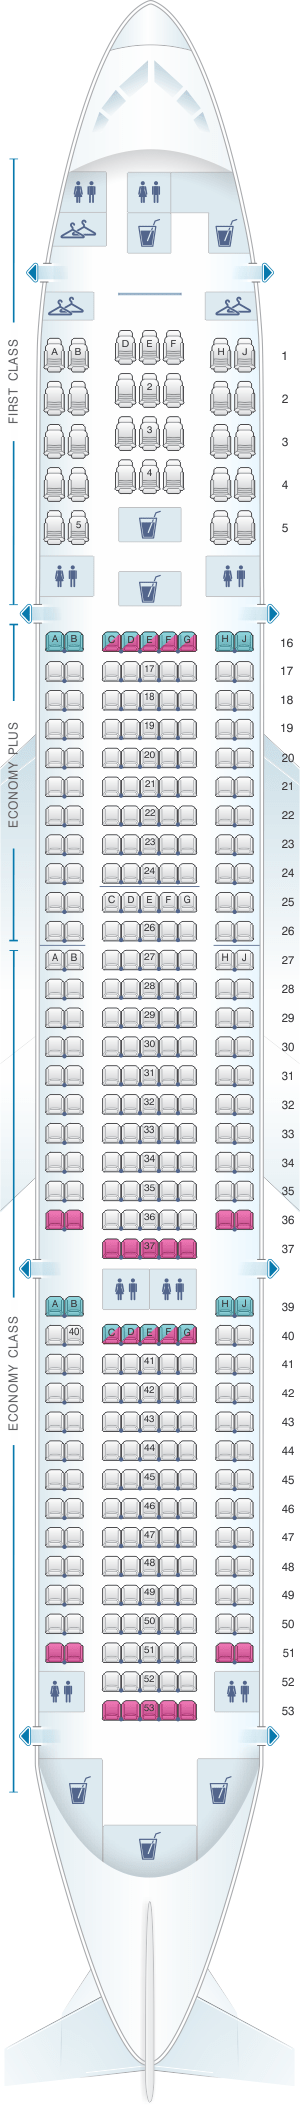 Boeing 777 200 Seat Map United Airlines Wallseat Co